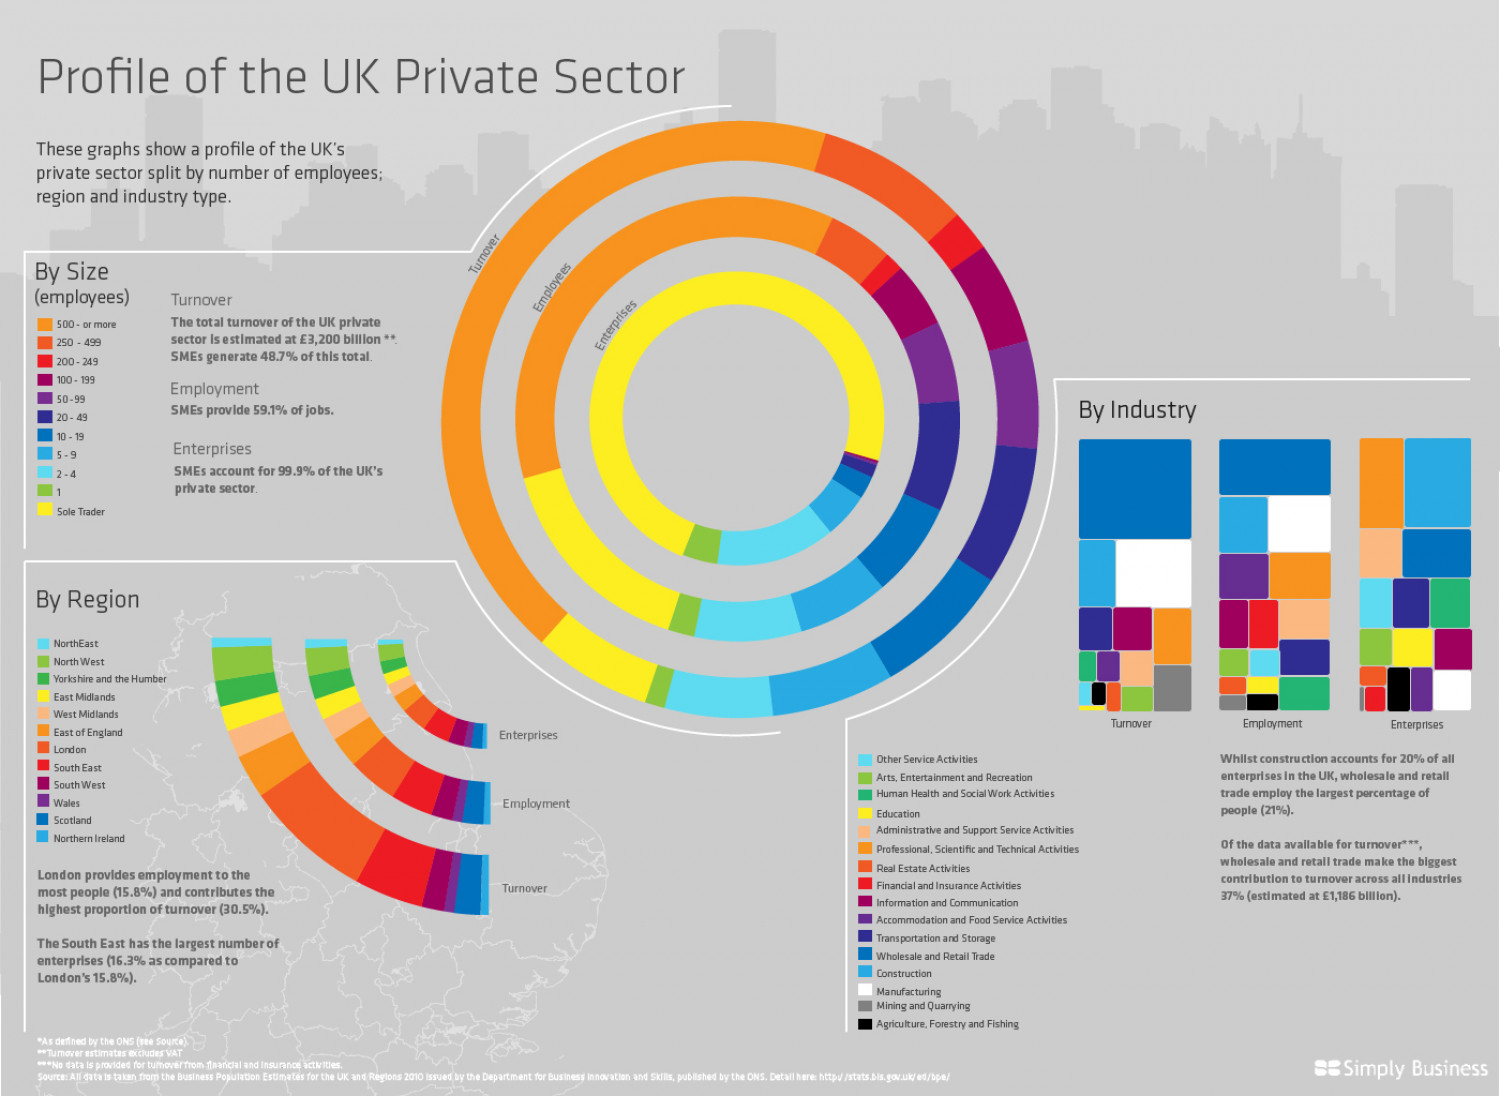 Profile of the UK Private Sector Infographic